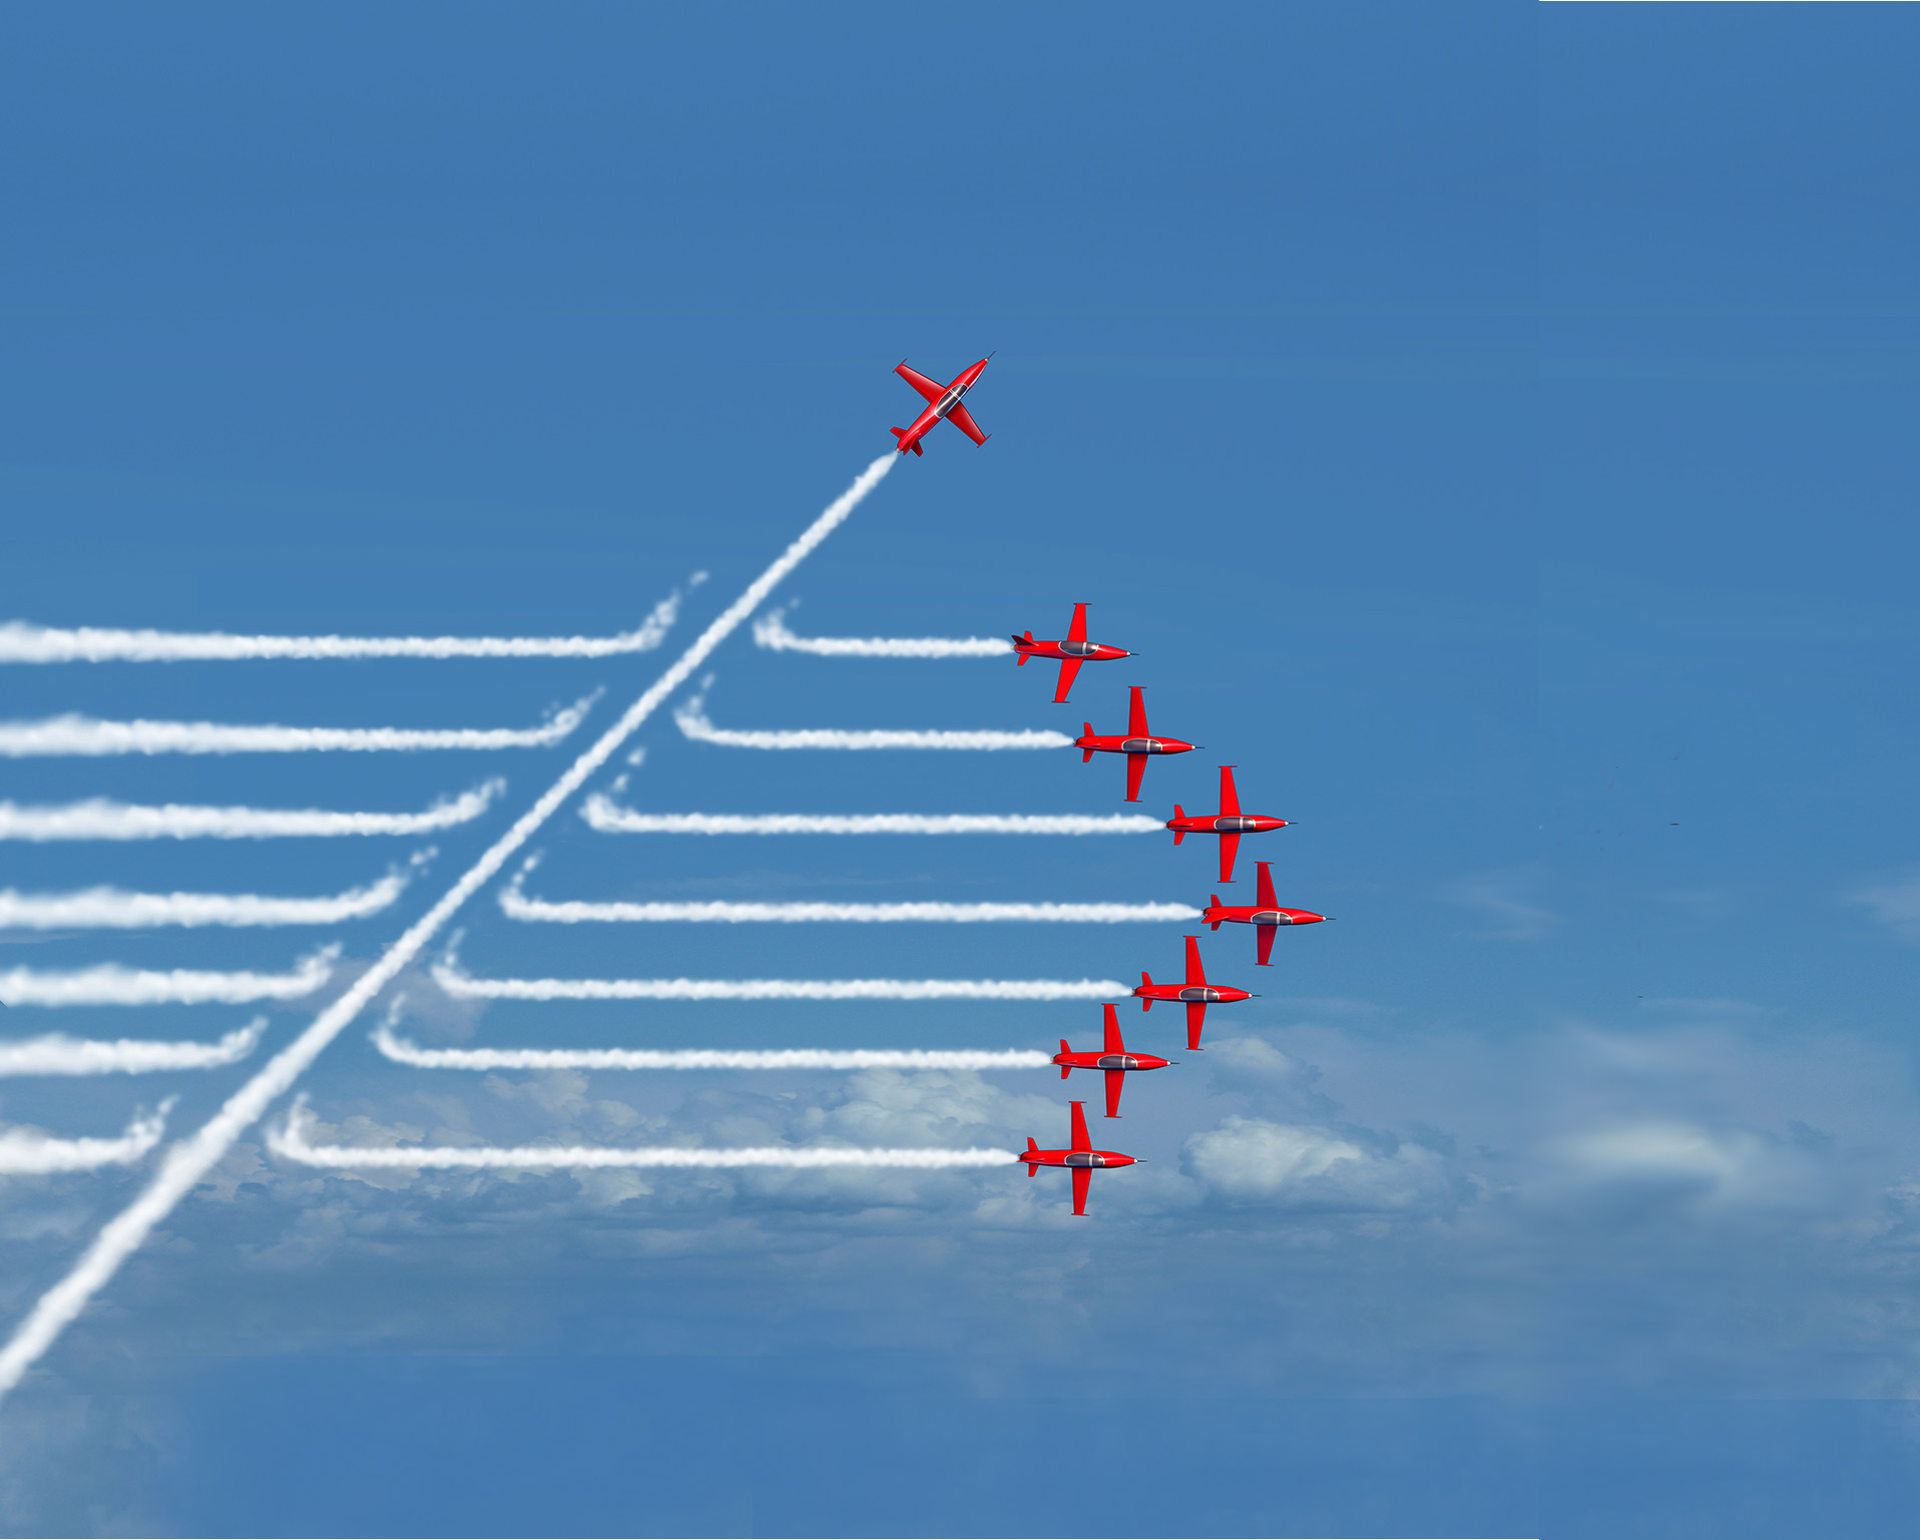 Change management - 7 red arrows flying in formation with 1 red arrow cutting across their contrails